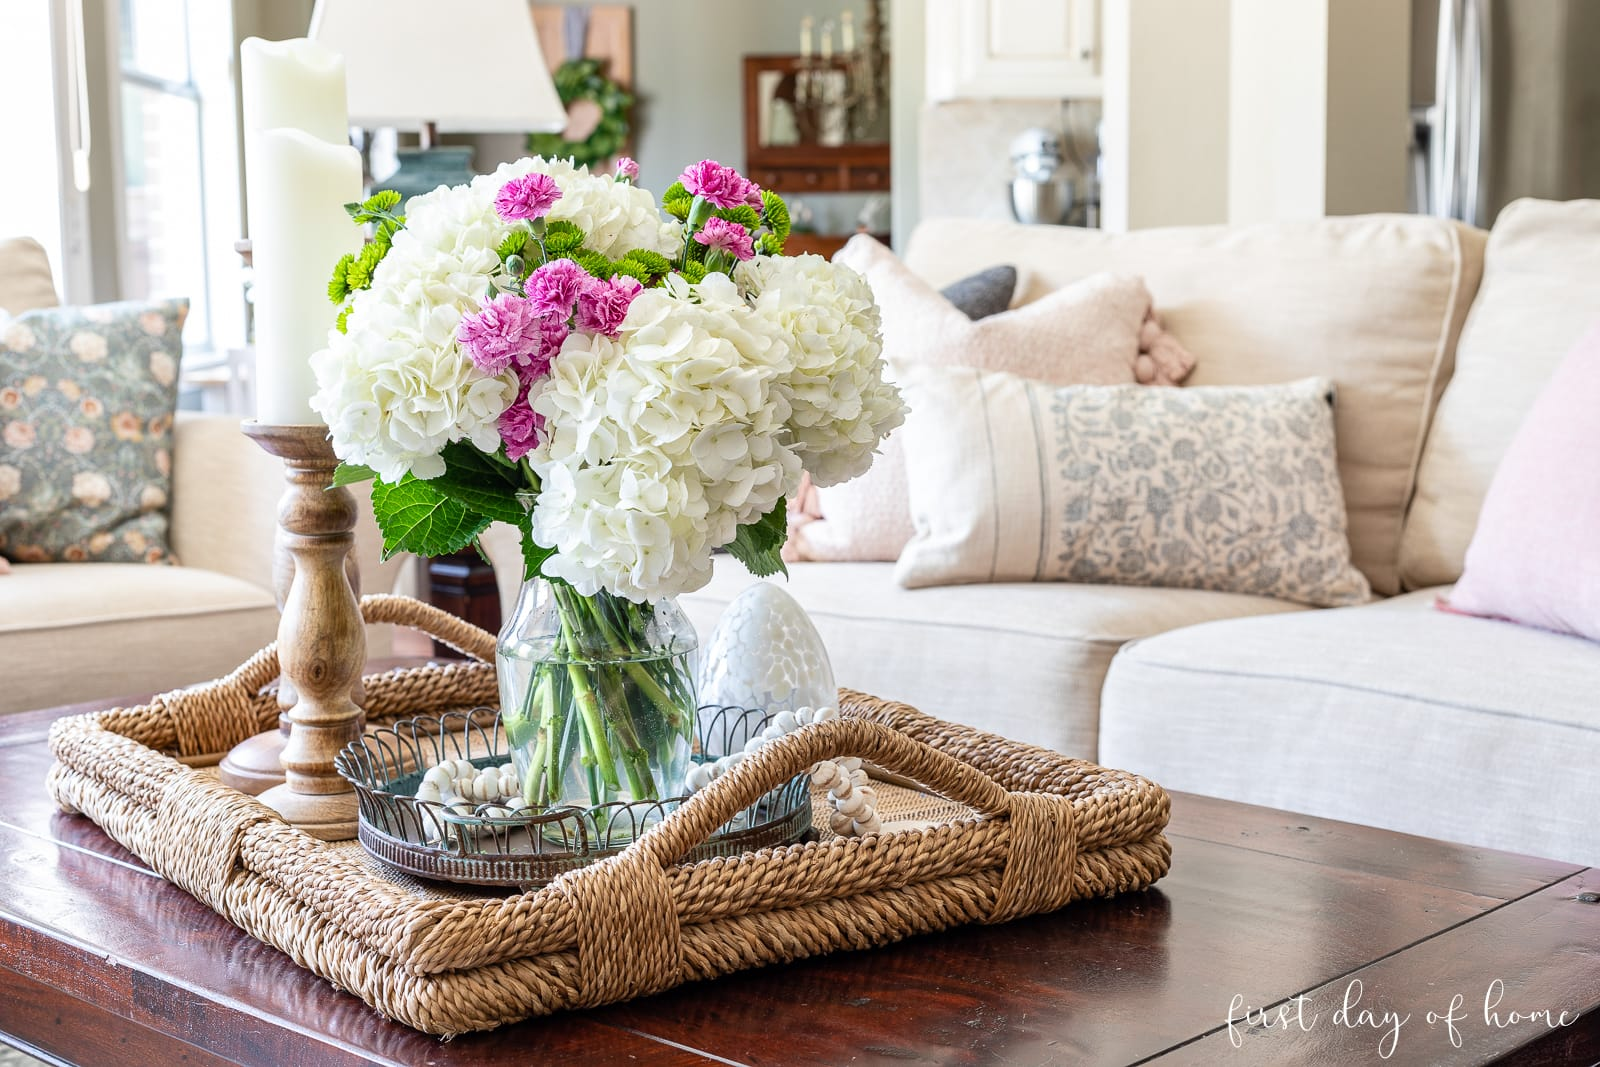 Coffee table centerpiece with real hydrangea floral arrangement, wooden bead garland, flameless candles and egg cloche